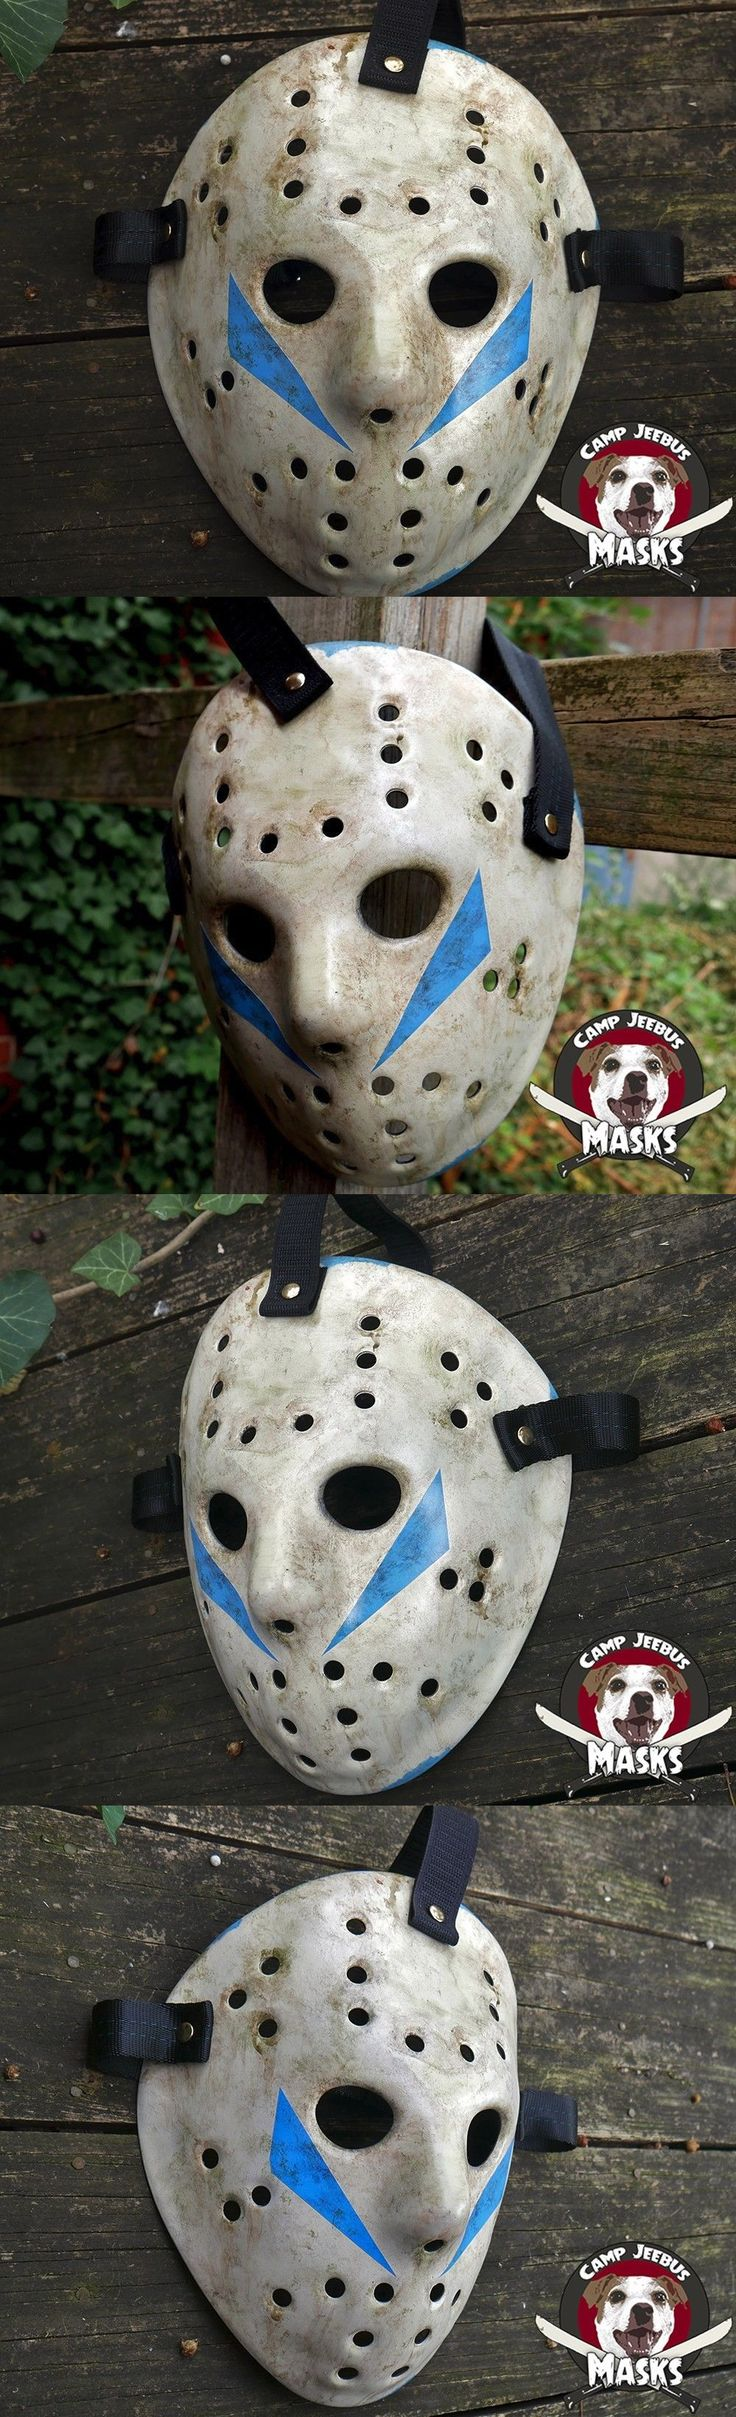 Masks and Eye Masks 116724: Friday The 13Th Part 5 (V) Film Accurate Hand Painted Jason (Roy) Hockey Mask -> BUY IT NOW ONLY: $90 on eBay!